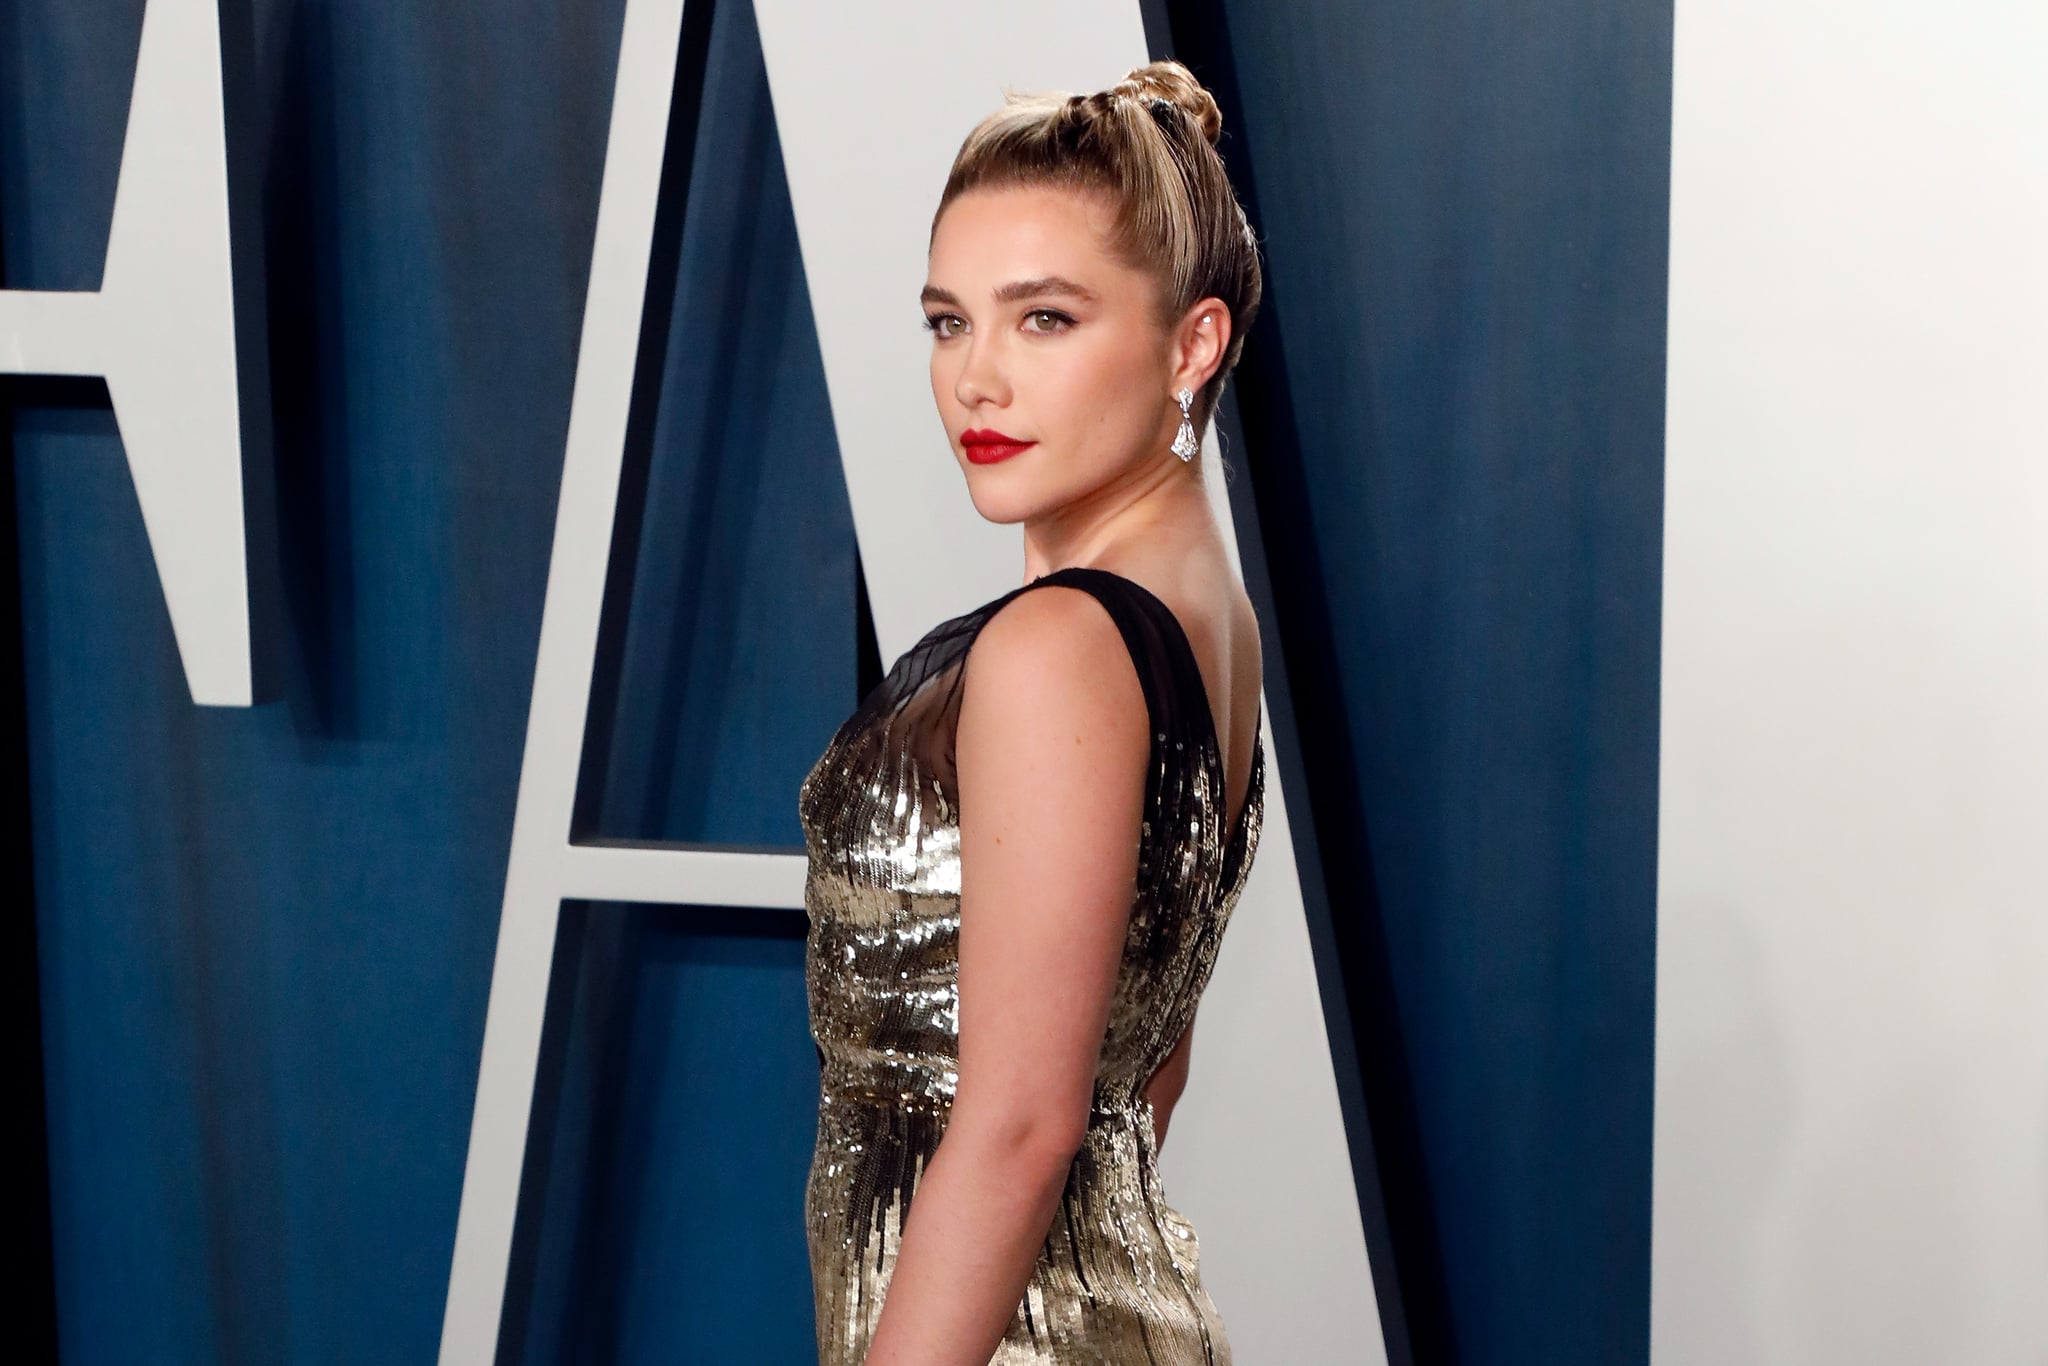 BEVERLY HILLS, CALIFORNIA - FEBRUARY 09: Florence Pugh attends the Vanity Fair Oscar Party at Wallis Annenberg Centre for the Performing Arts on February 09, 2020 in Beverly Hills, California. (Photo by Taylor Hill/FilmMagic,)